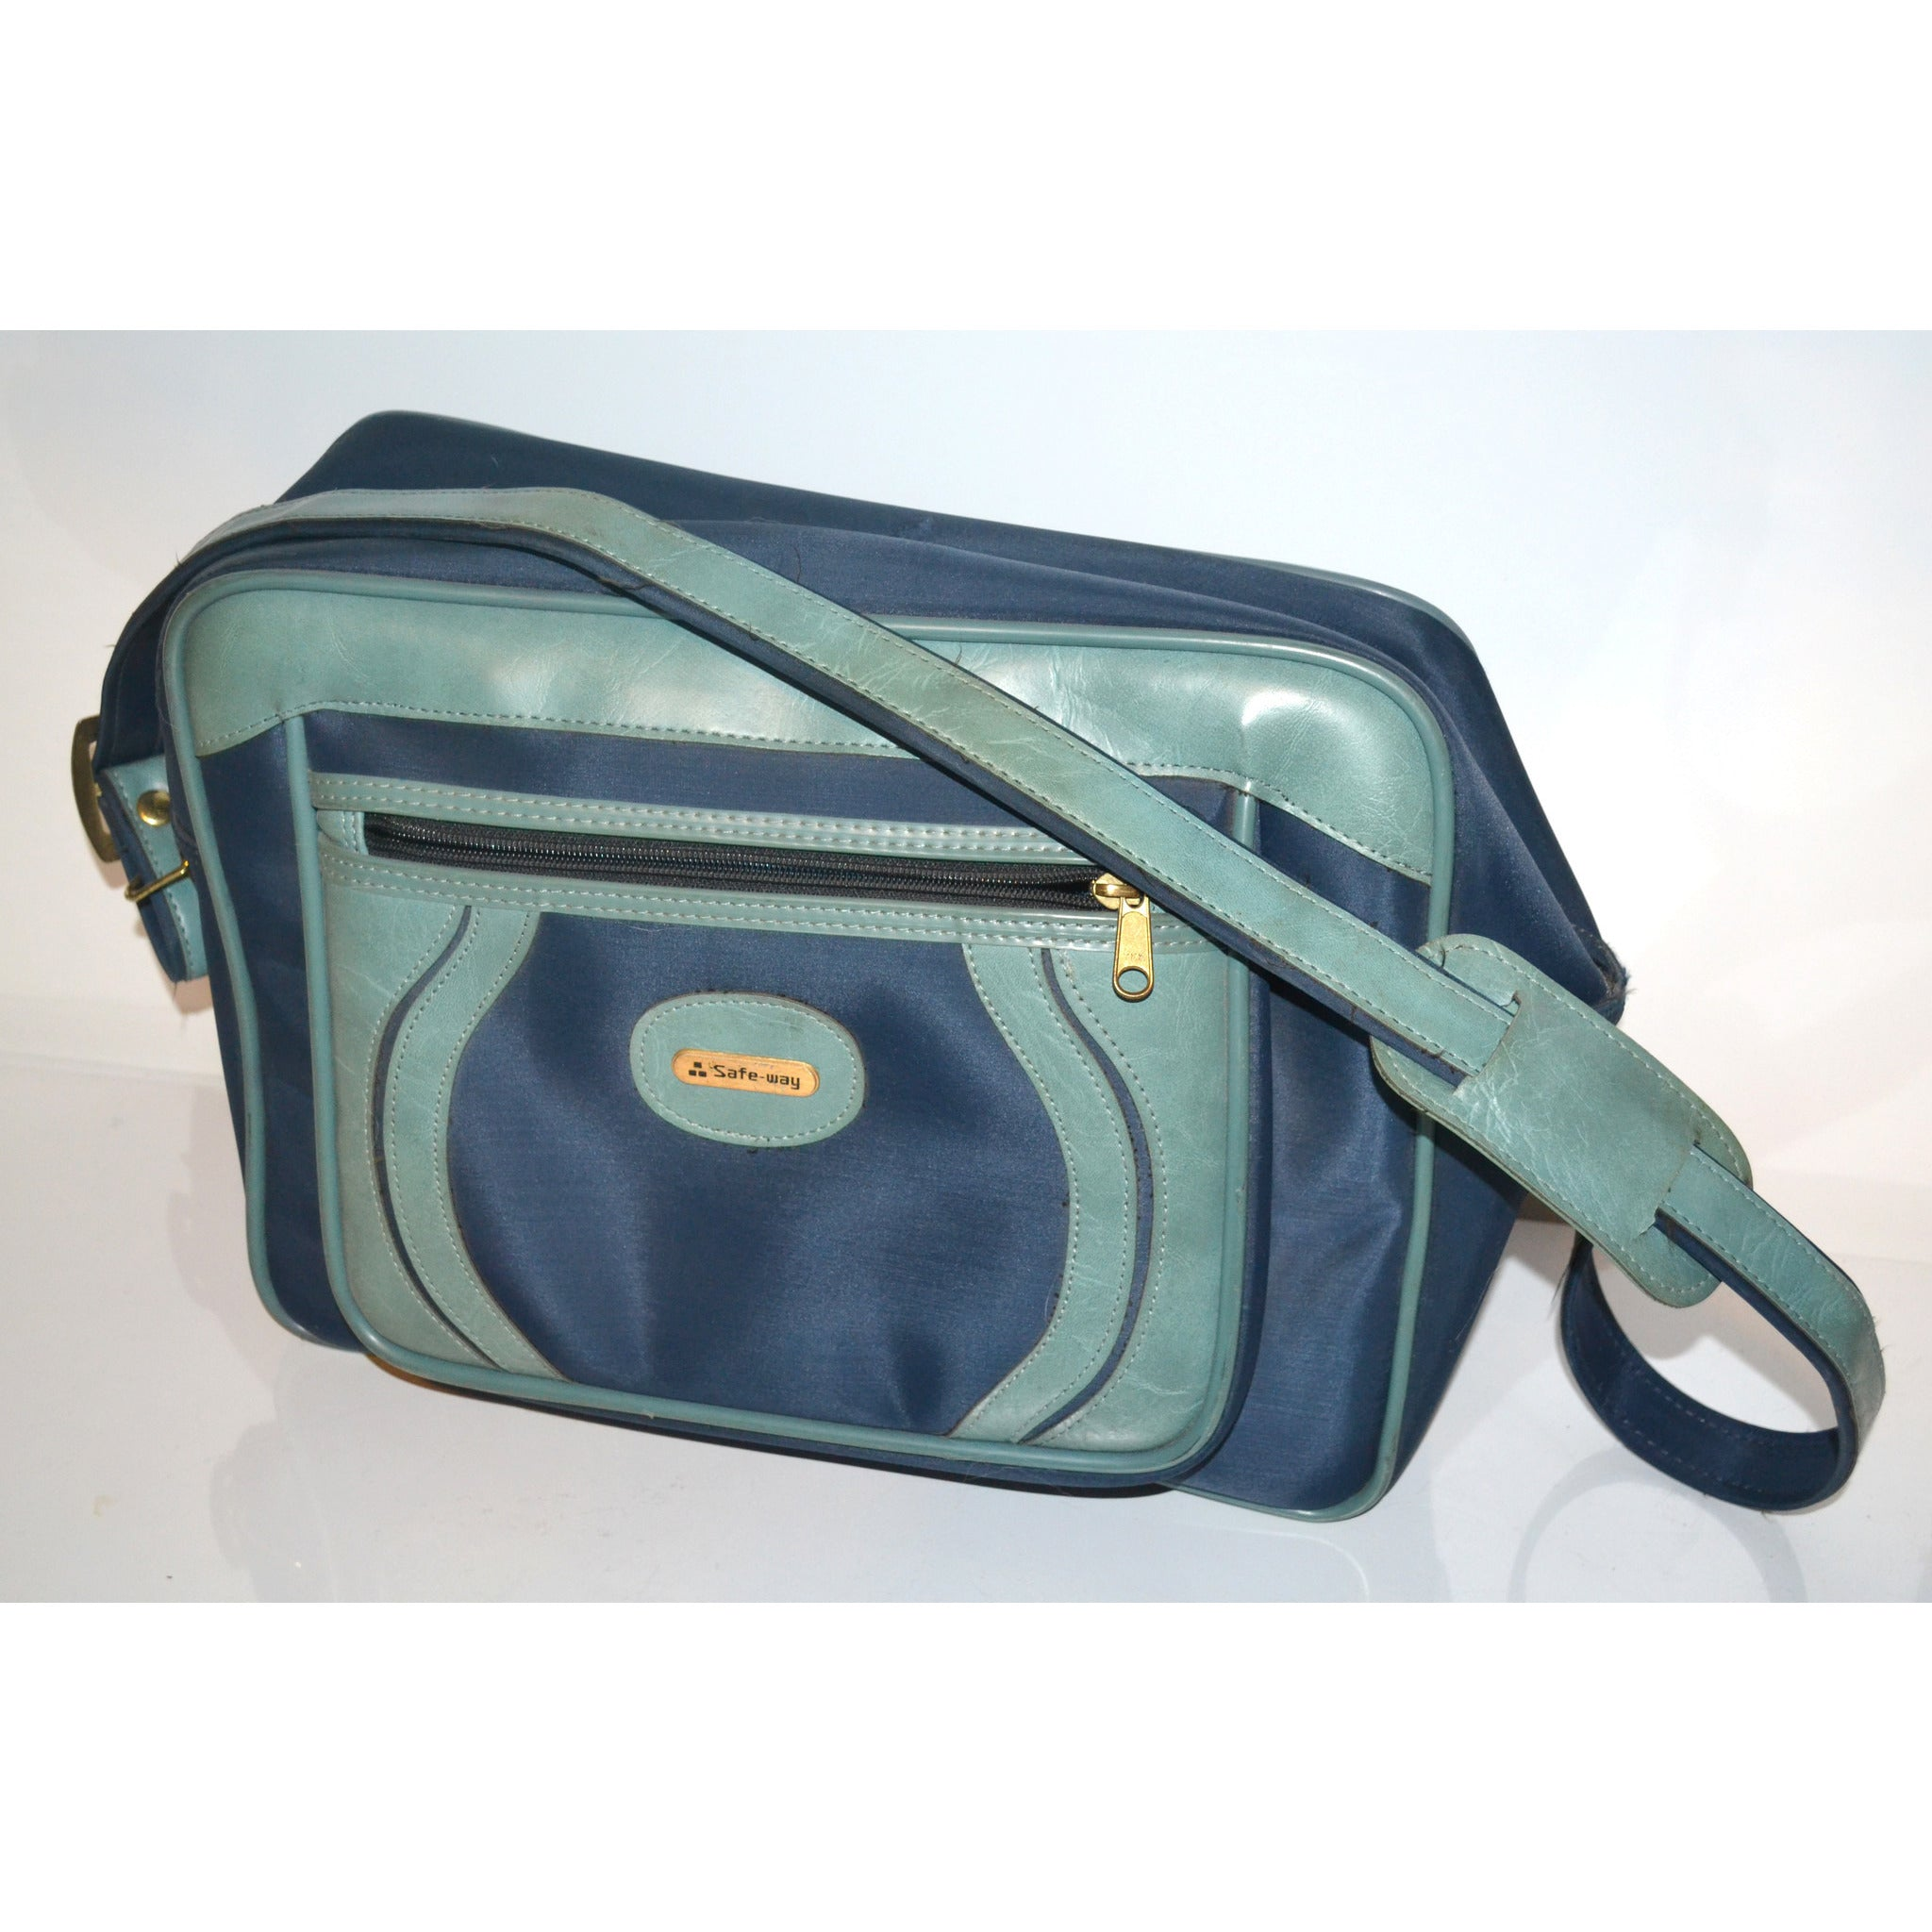 Vintage Blue Nylon Vinyl Travelbag By Safe-way